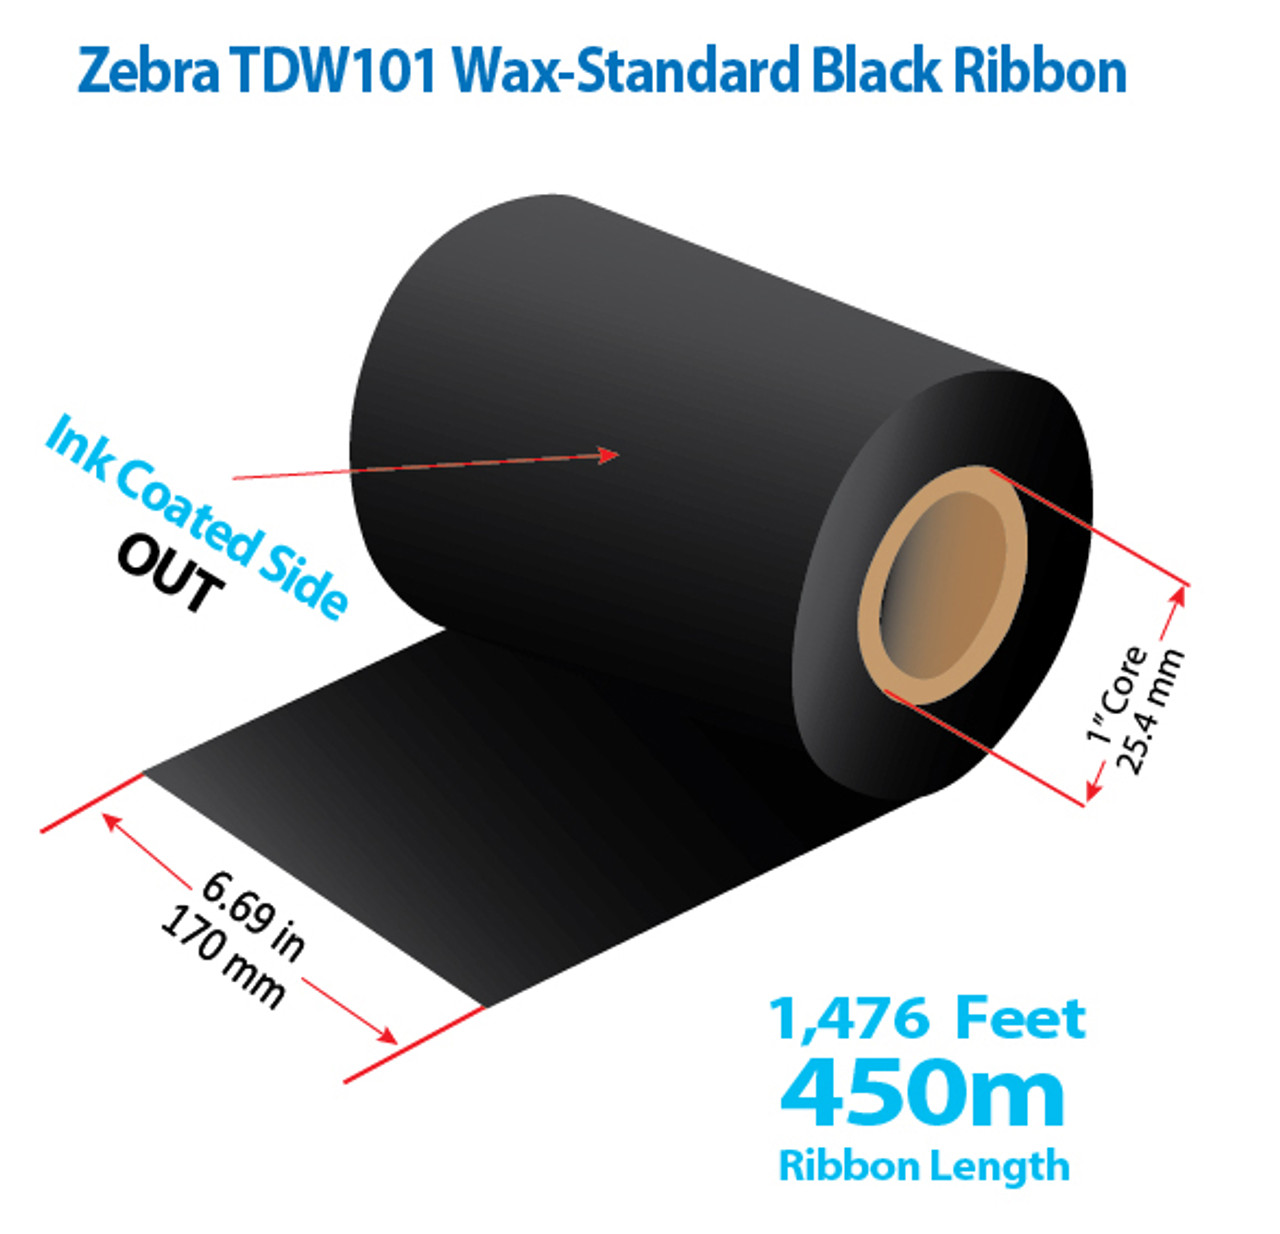 """Zebra 6.69"""" x 1476 Ft TDW101 Wax Ribbon with INK OUT 